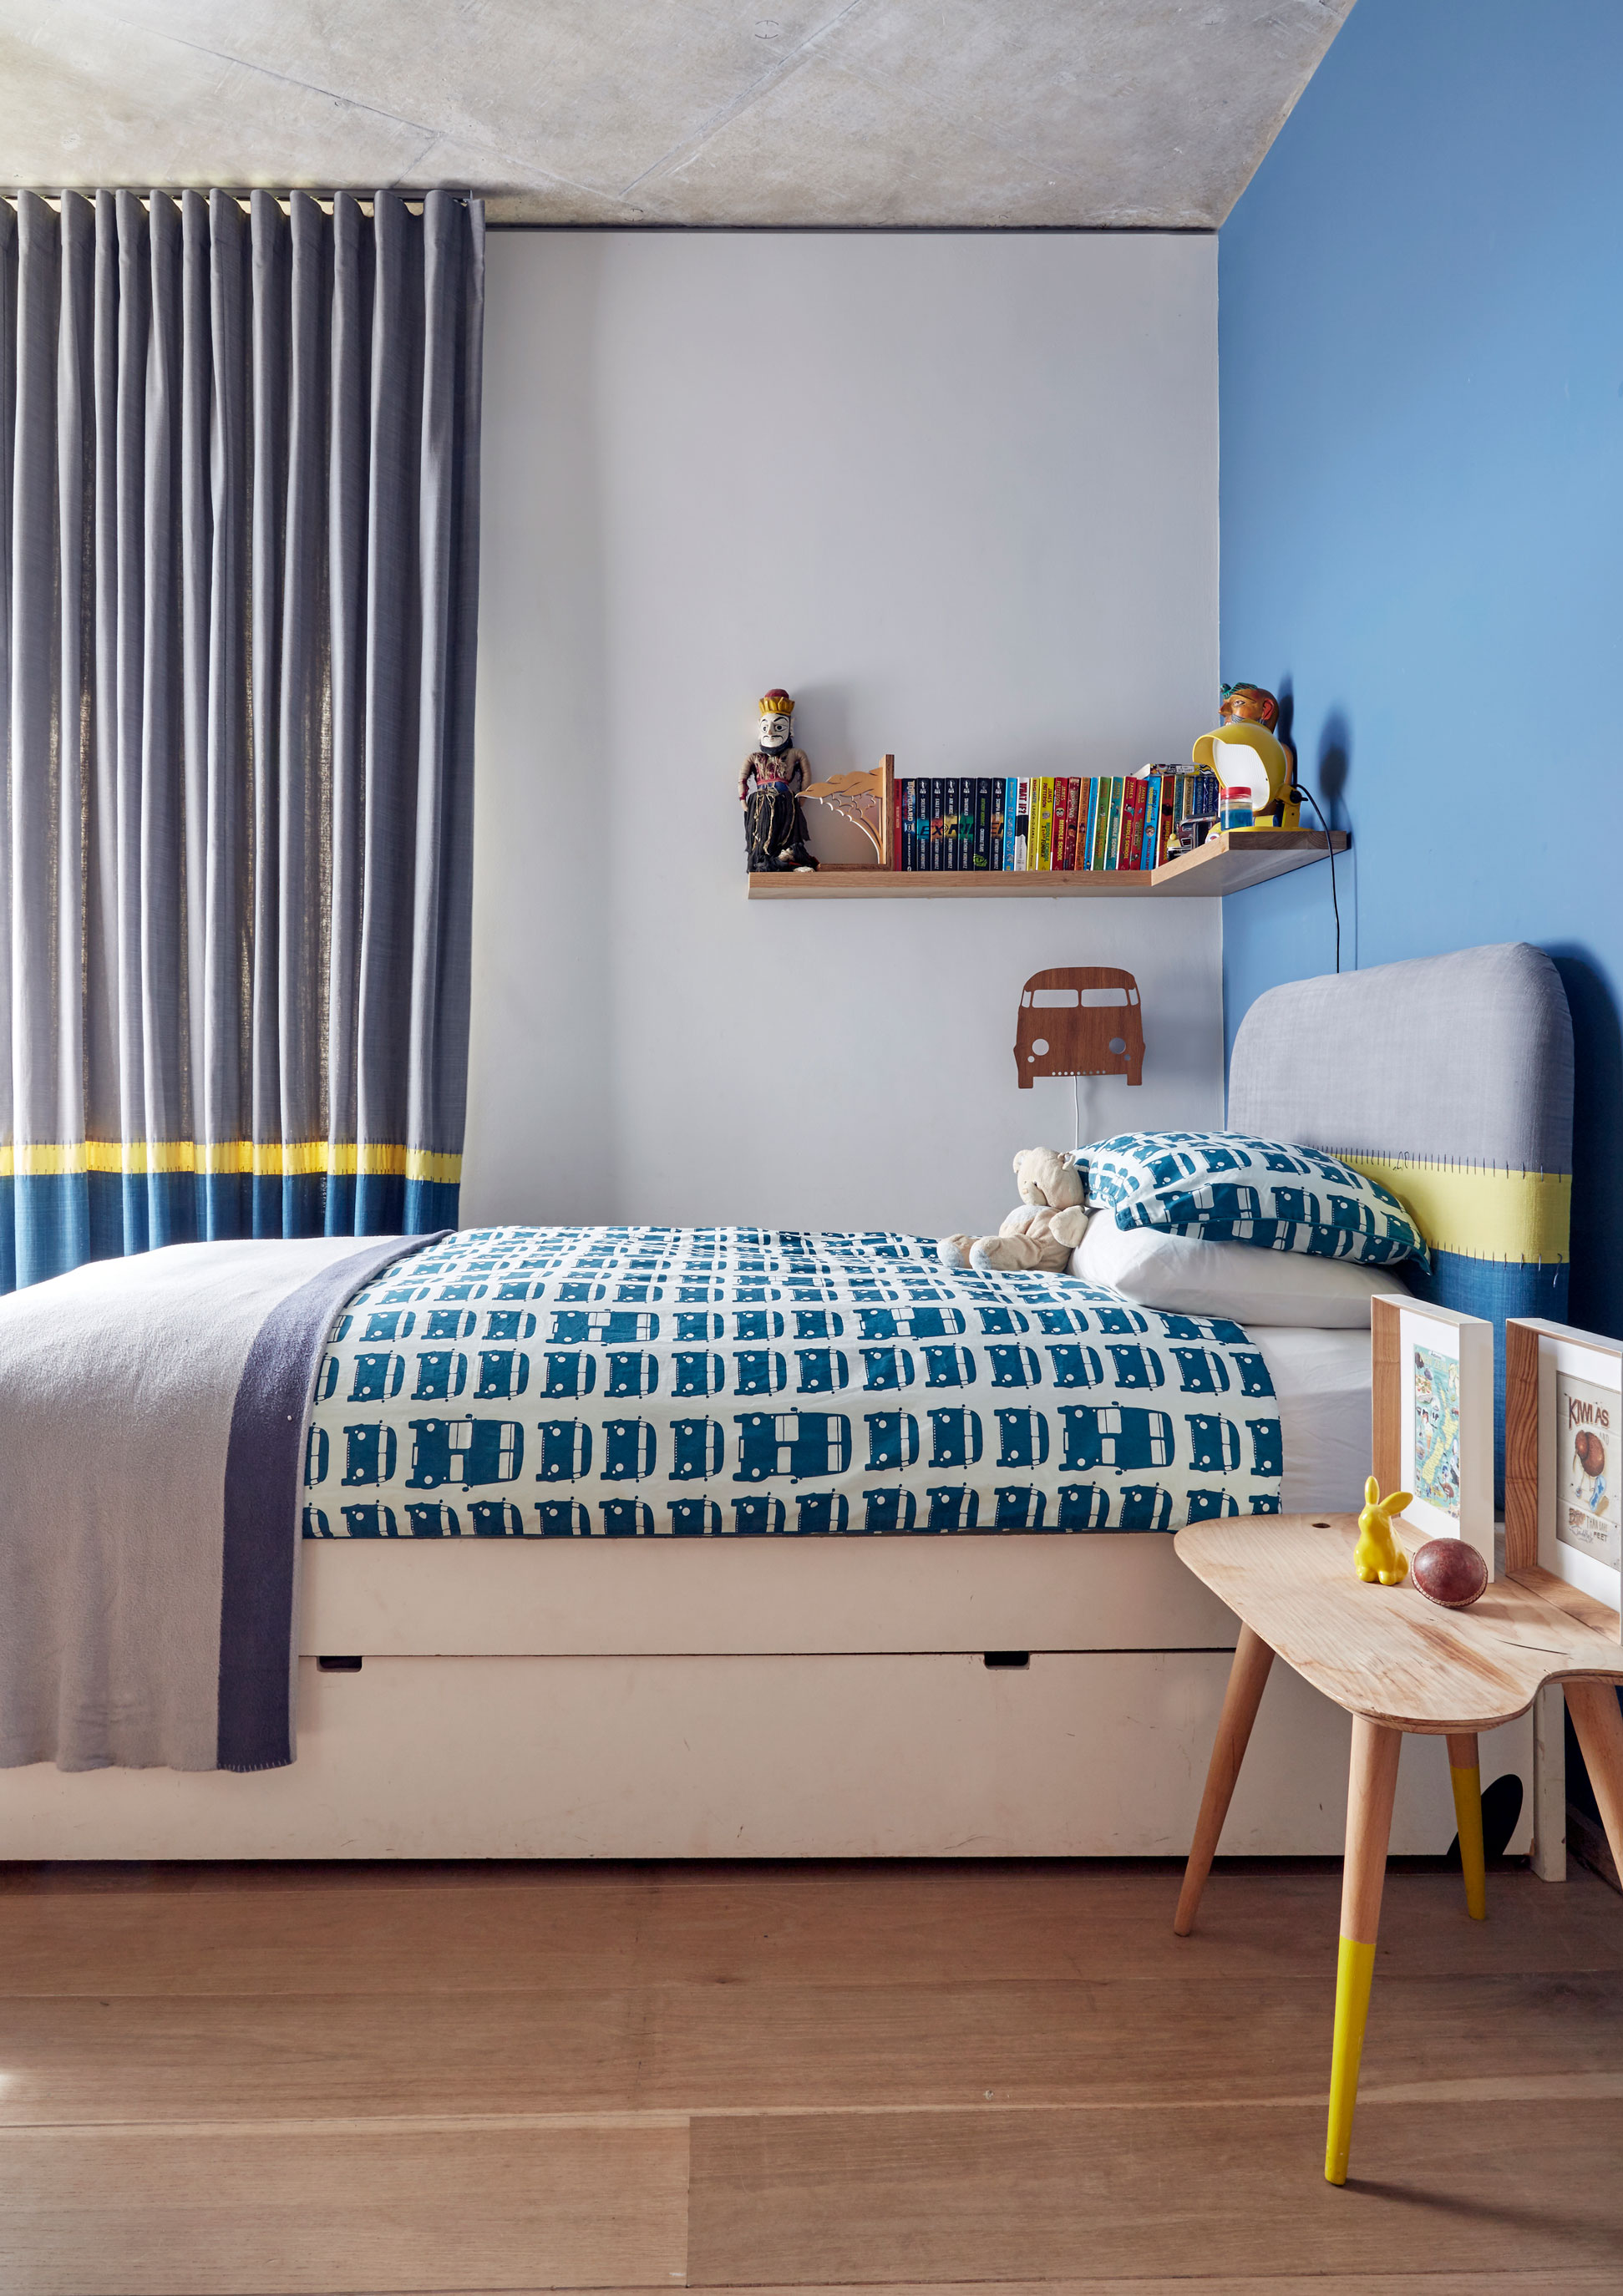 Matt and Victoria!&s son Jonty!&s bedroom carries the raw materiality evident in the wood and concrete throughout the rest of the house, and brightens it with muted primary colours.